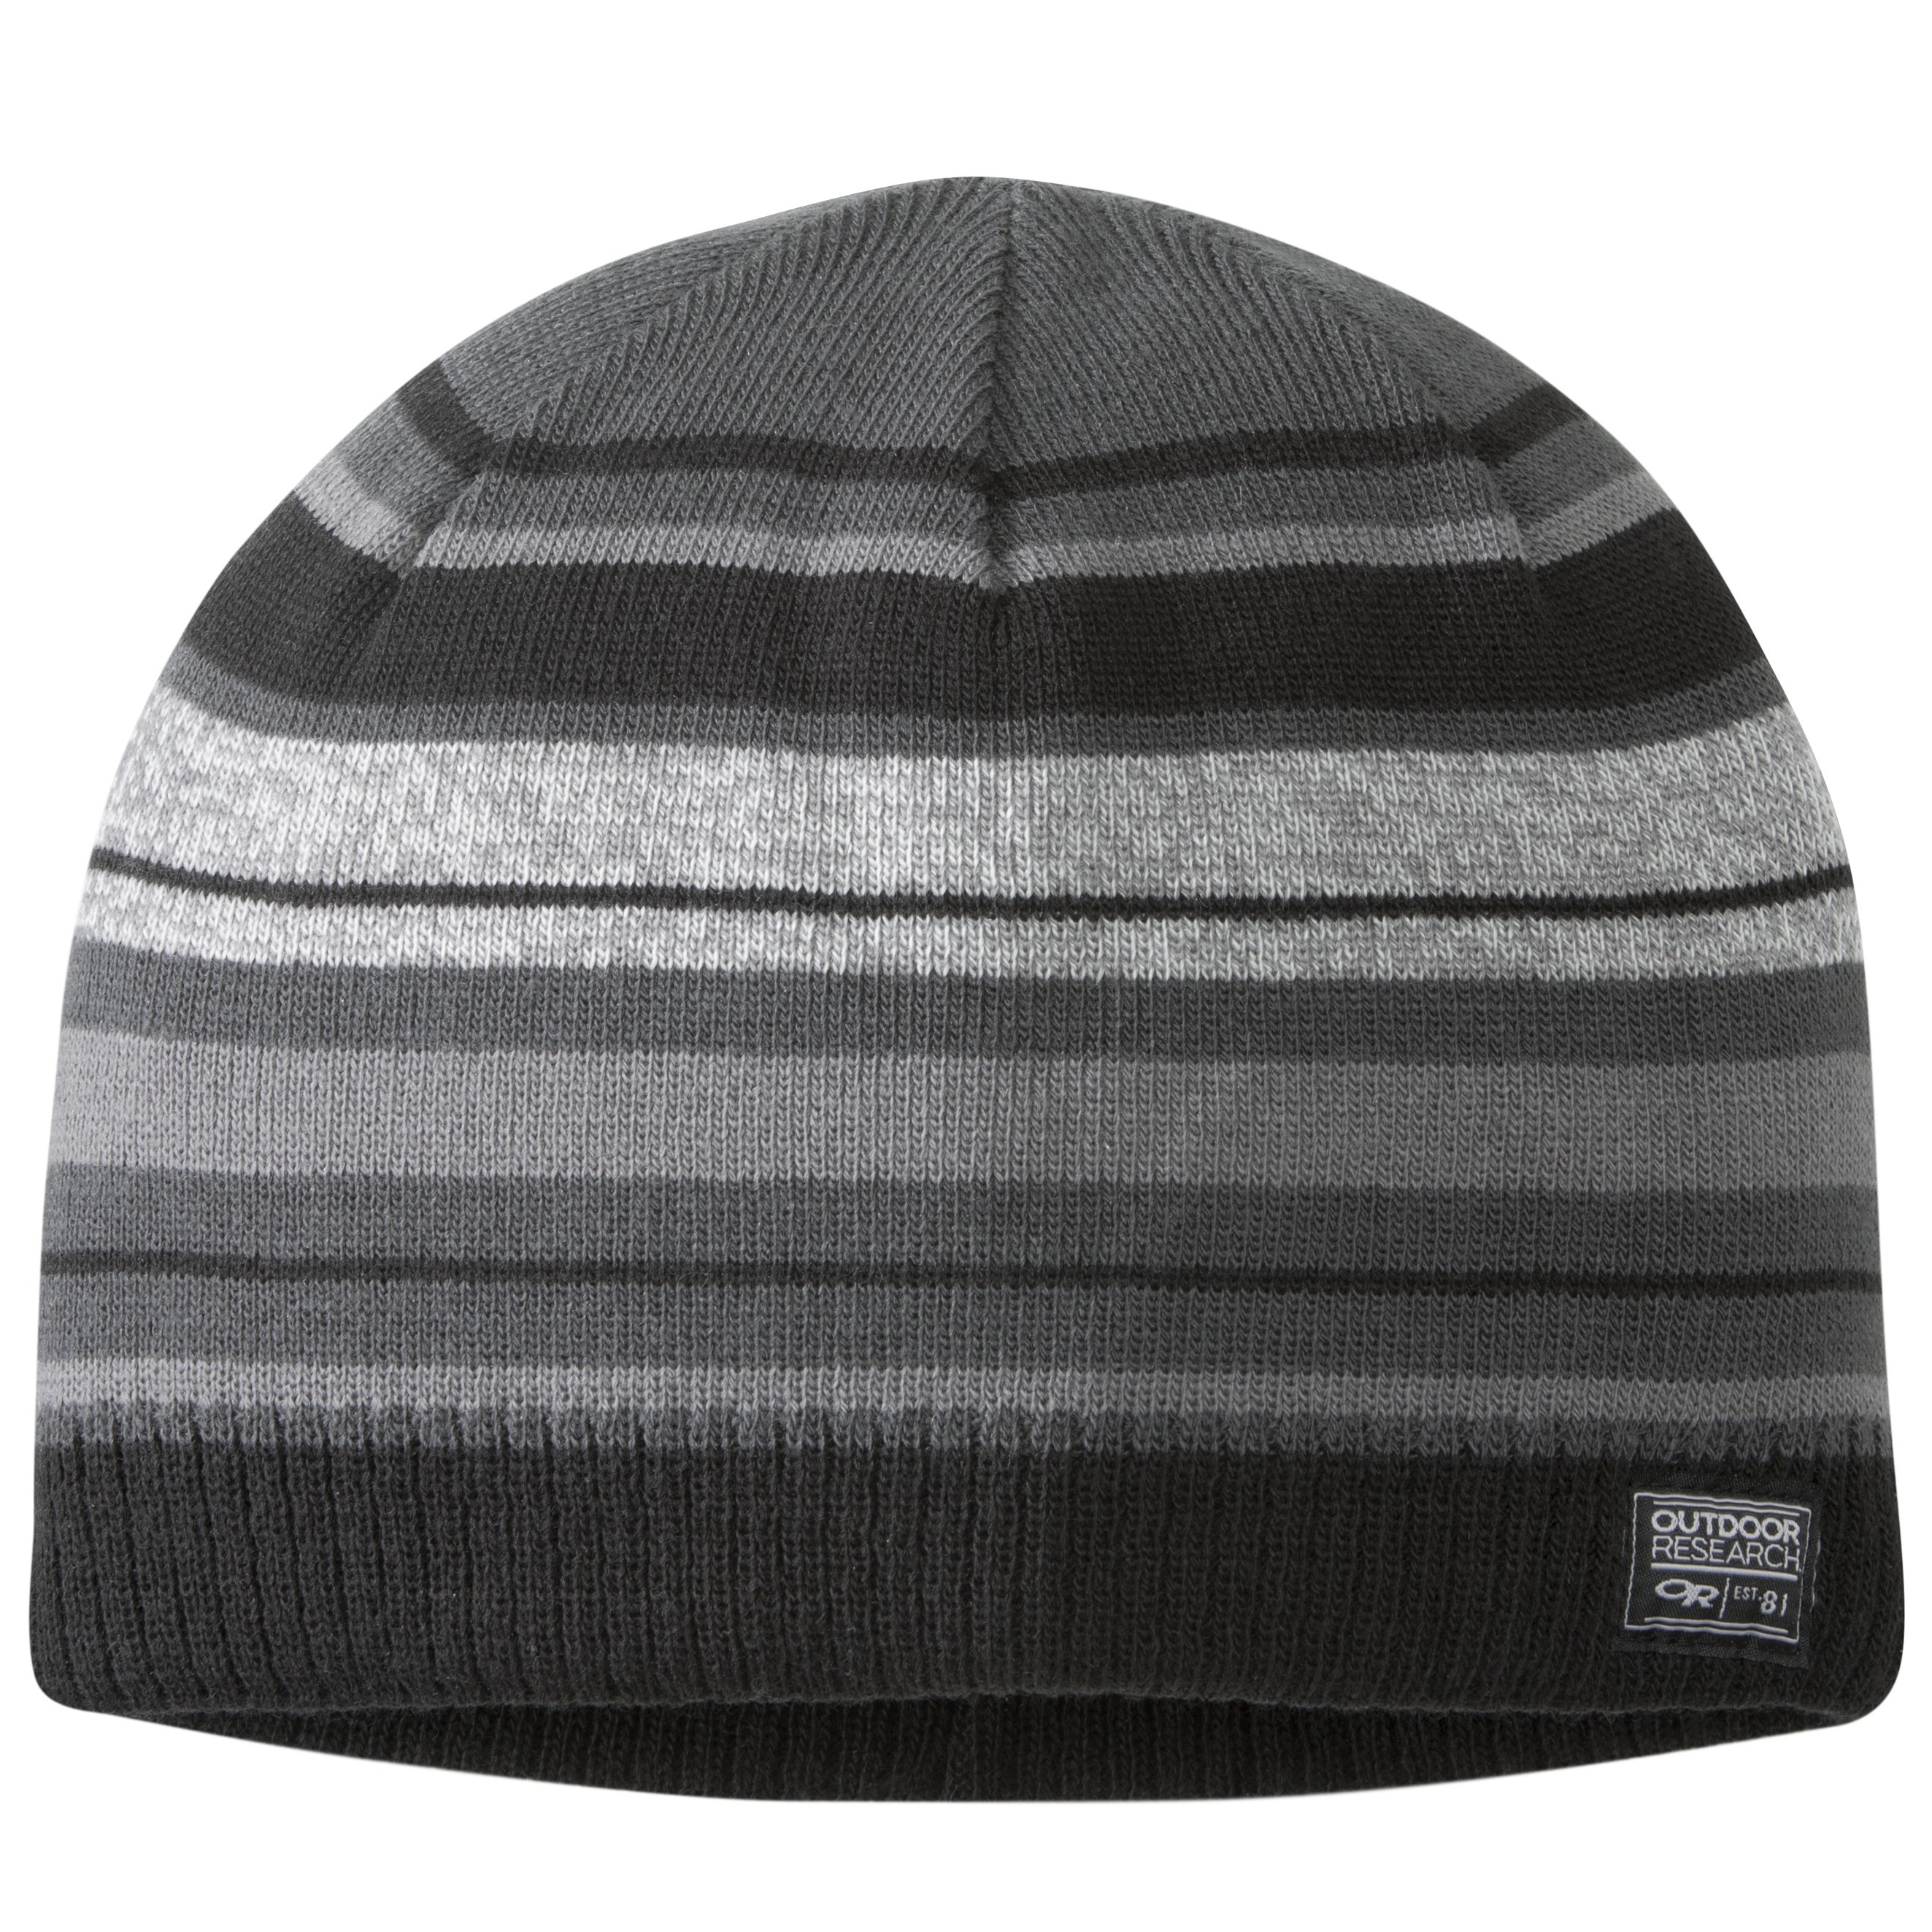 Outdoor Research Baseline Insulated Beanie - Black